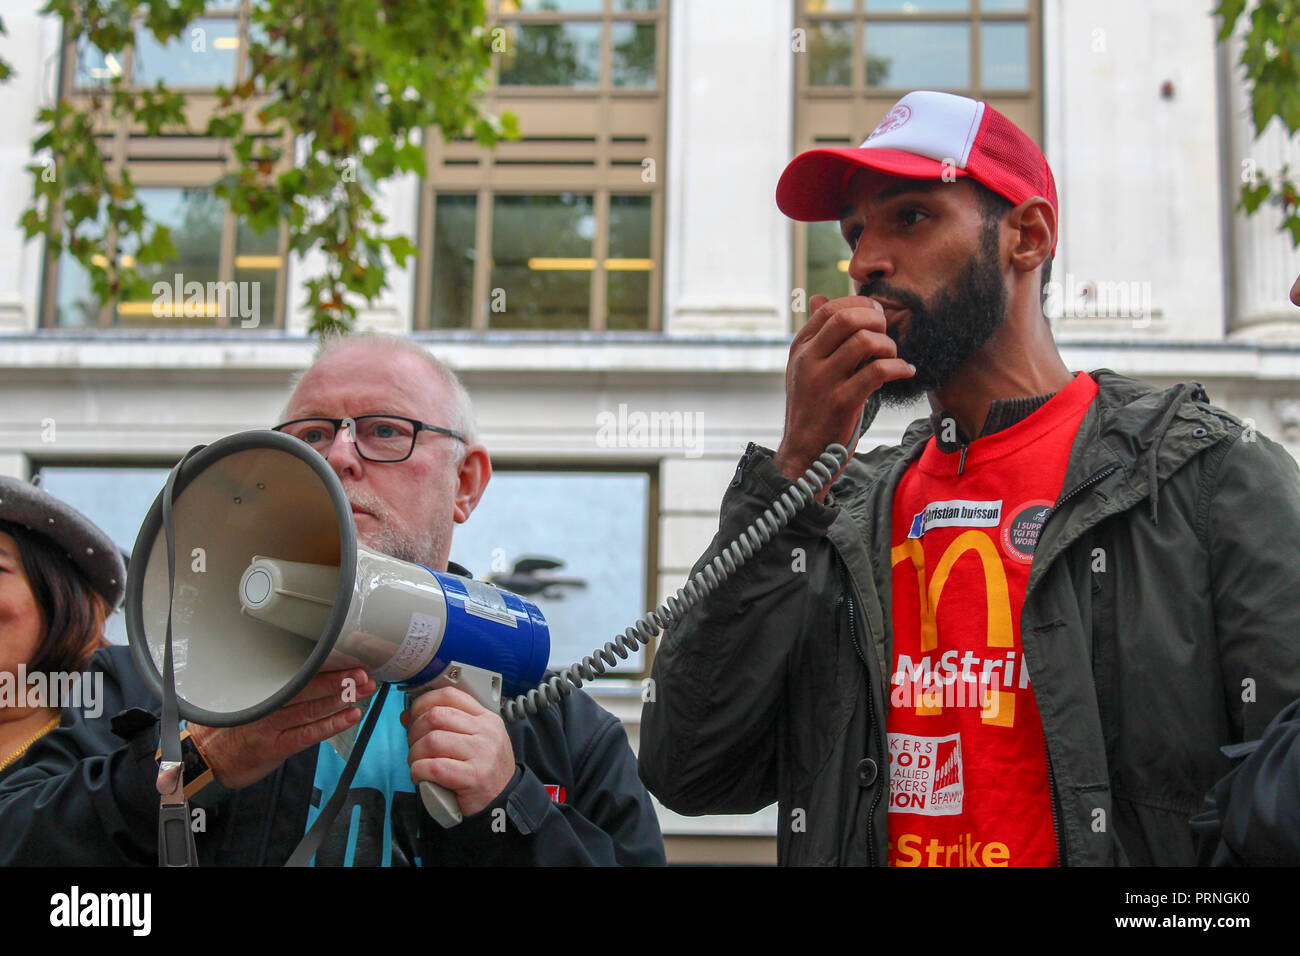 Leicester Square, London - 3rd October 2018. McDonald's, Wetherspoons, & TGI Friday workers take part in a co-ordinated strike, the first campaign of its kind, to highlight poor wage. Credit: Oliver Cole/Alamy Live News - Stock Image